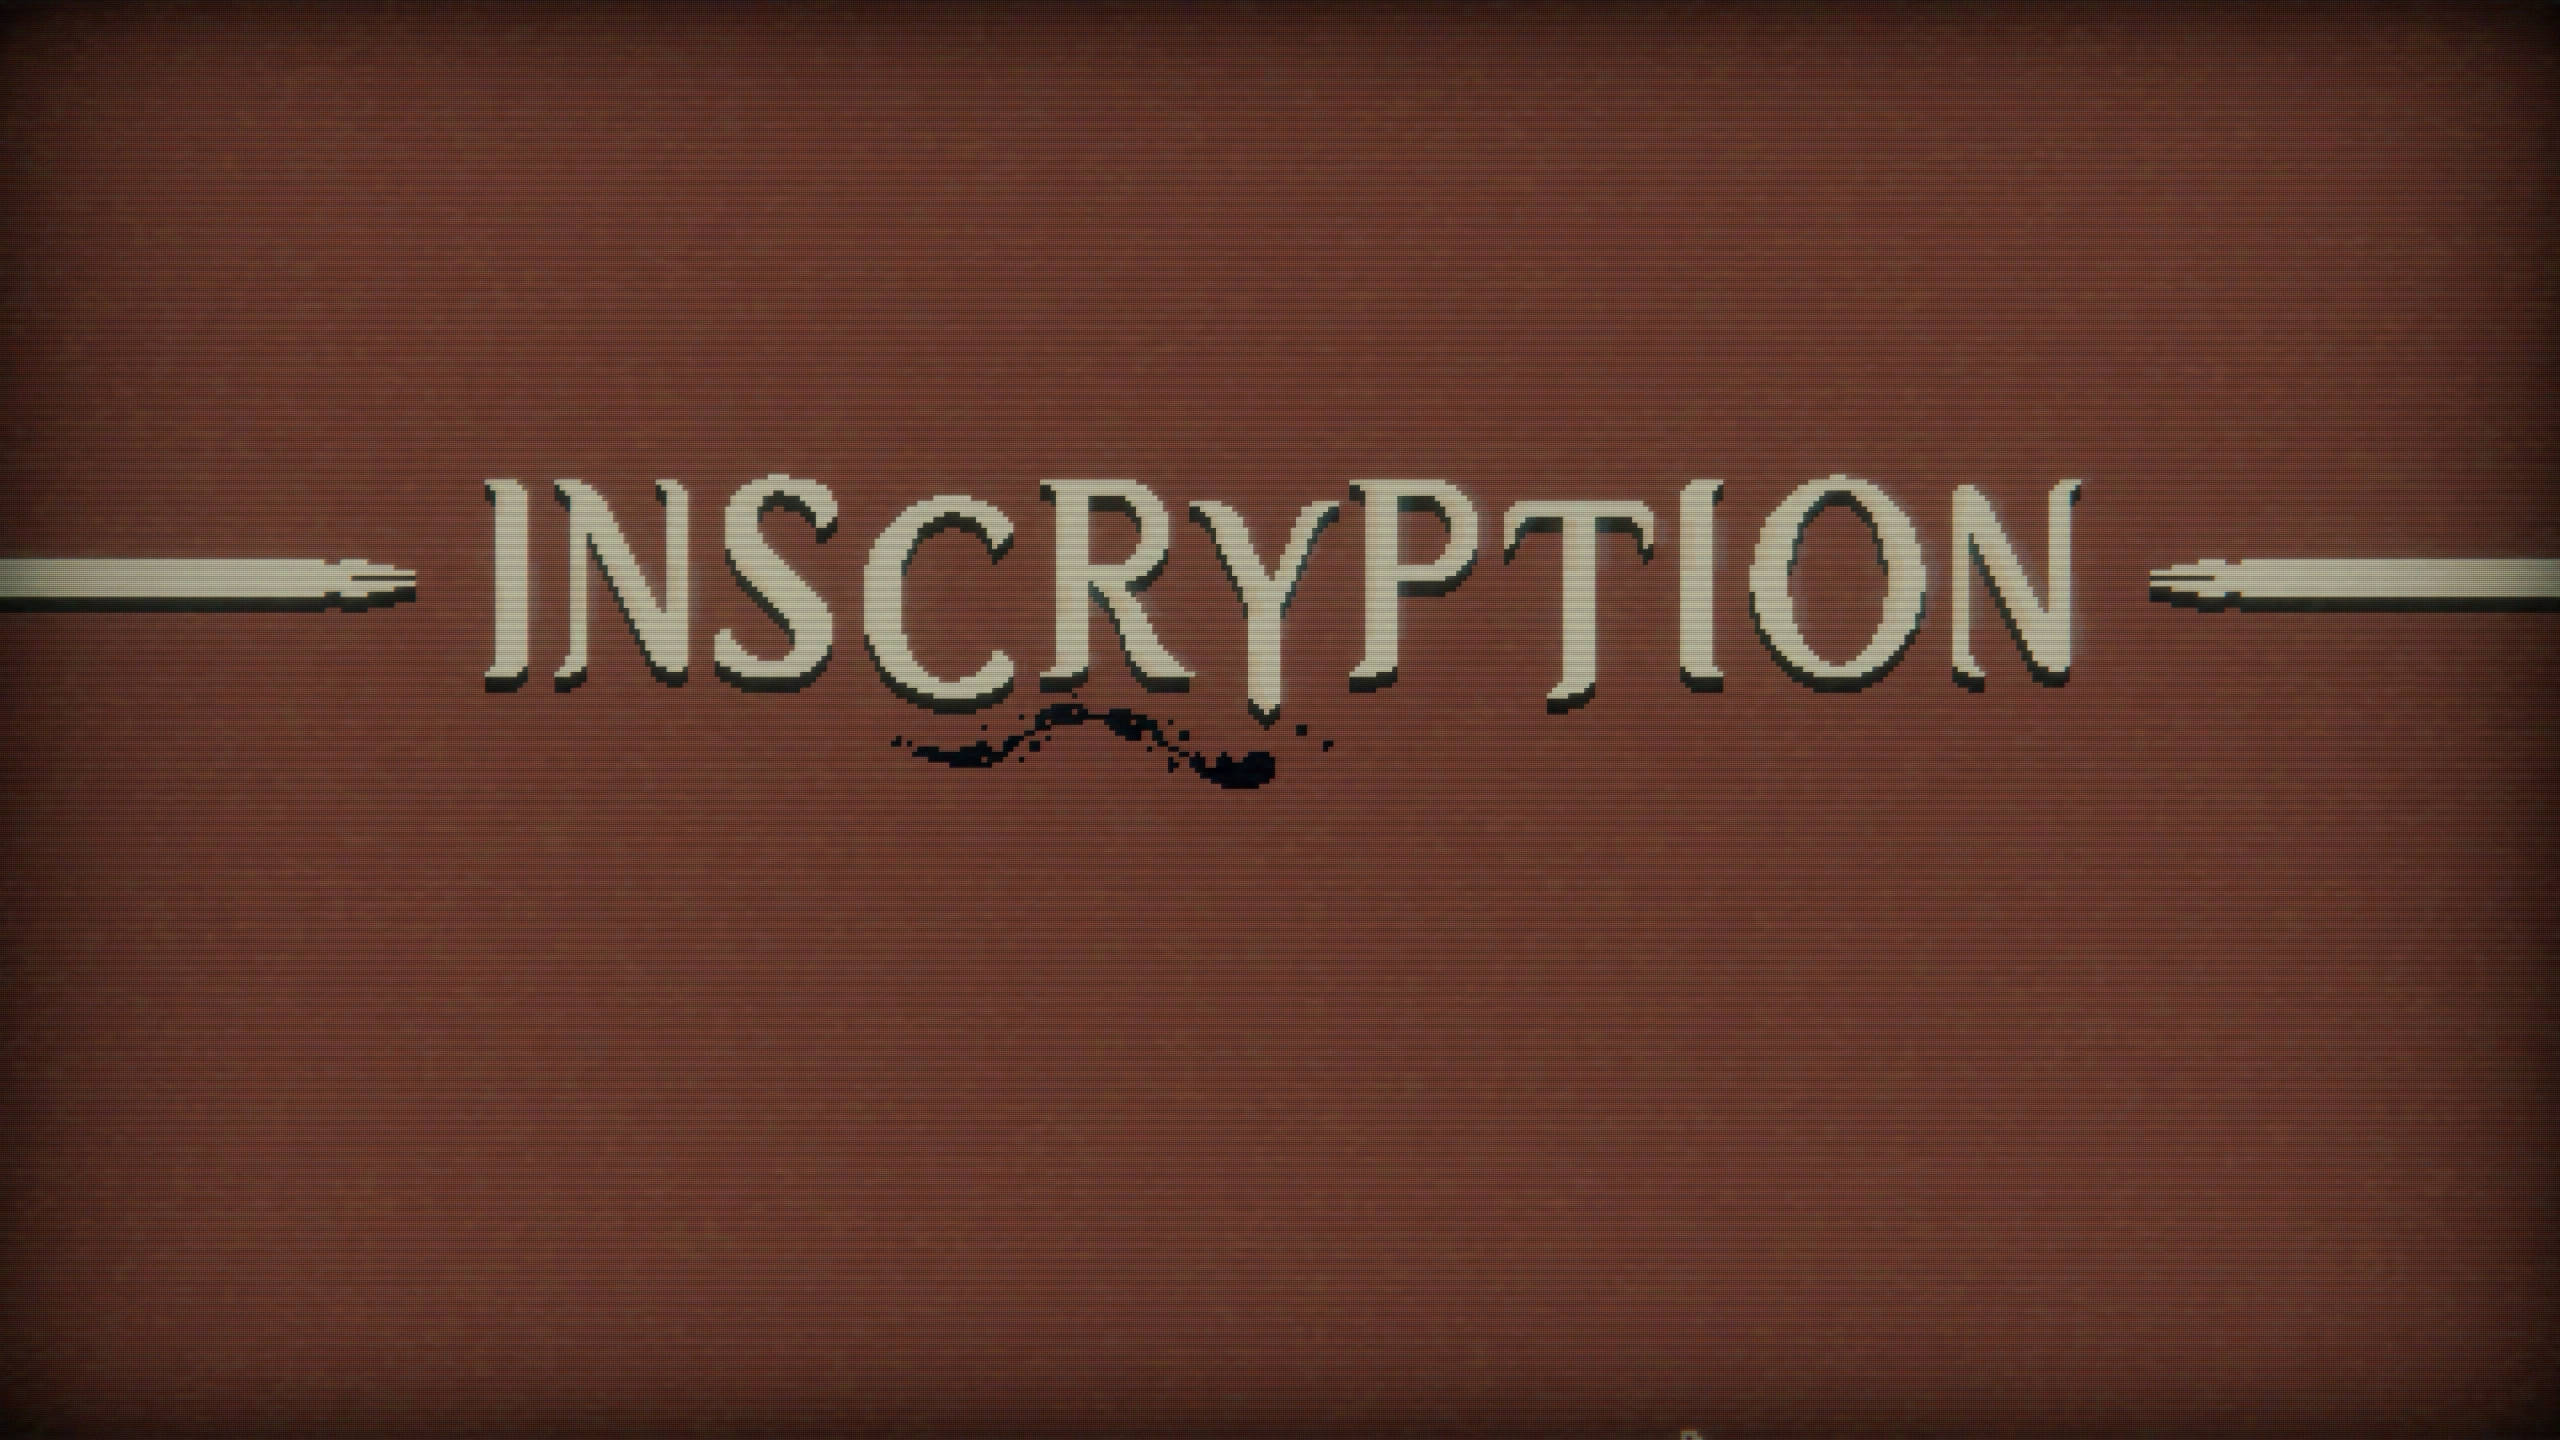 Inscryption is one of the most unsuspecting indie games of the year